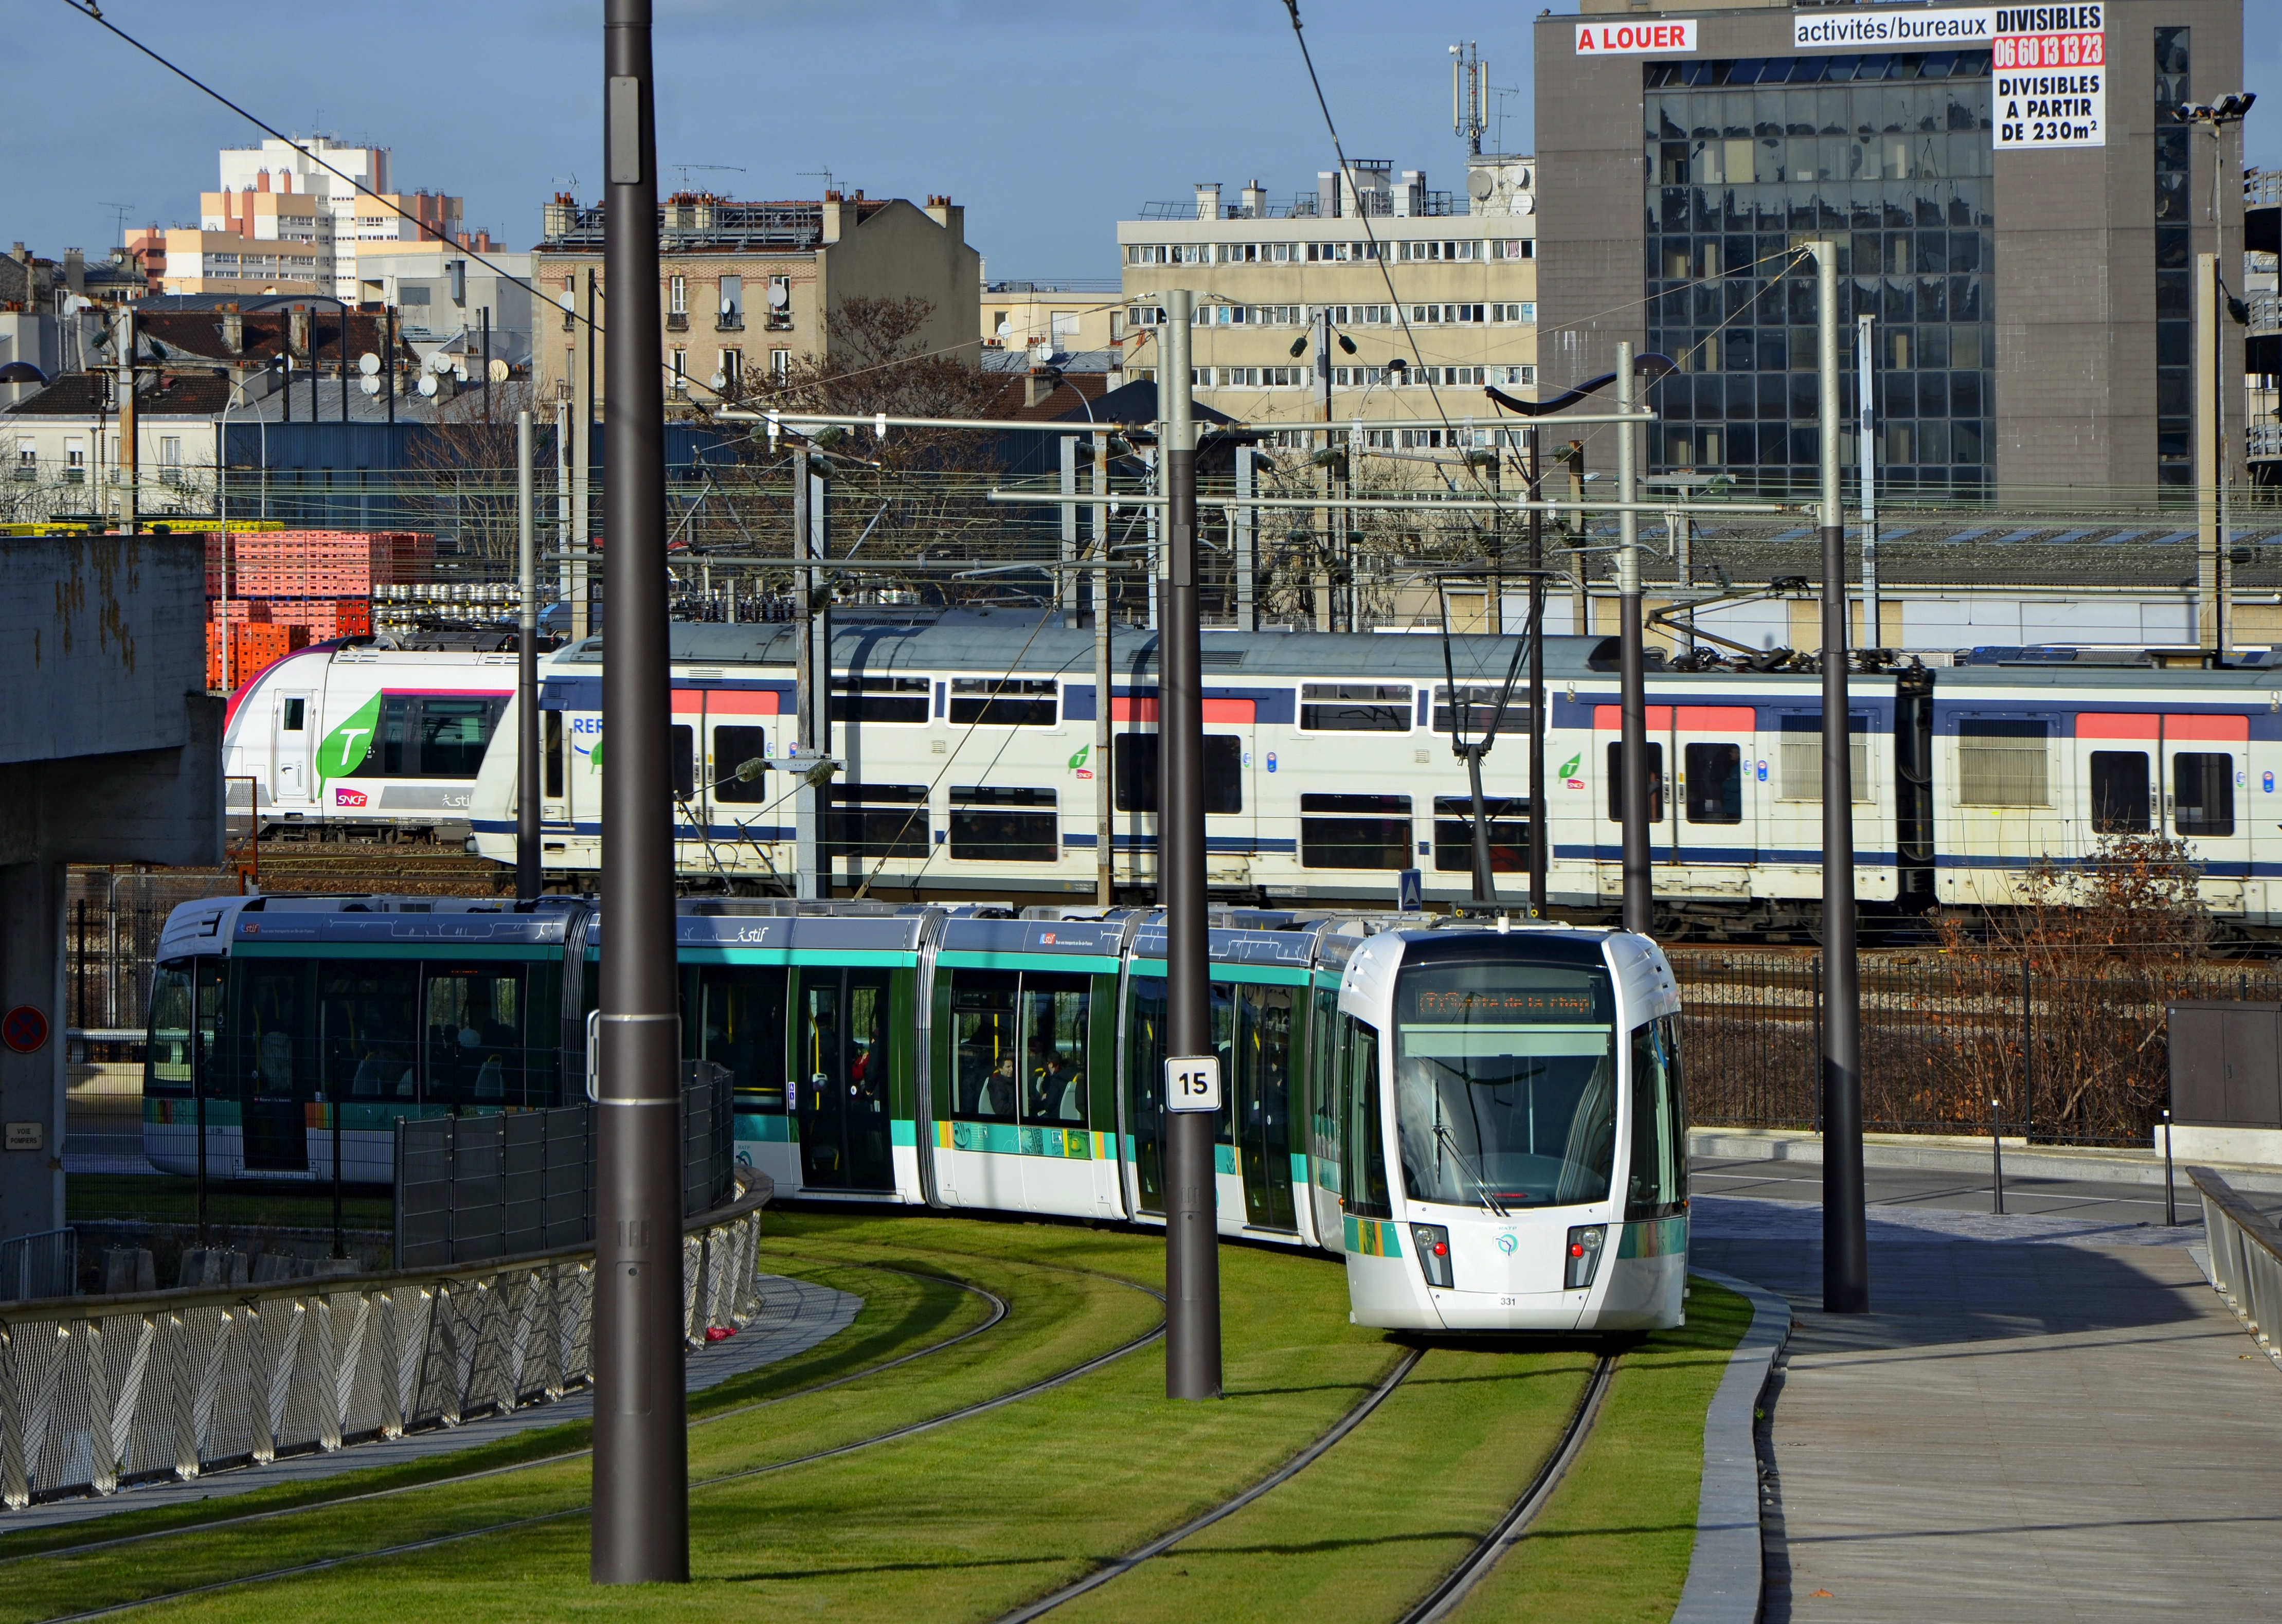 22500 File Tramway Line T3b In Paris Near Canal De L Ourcq Dsc